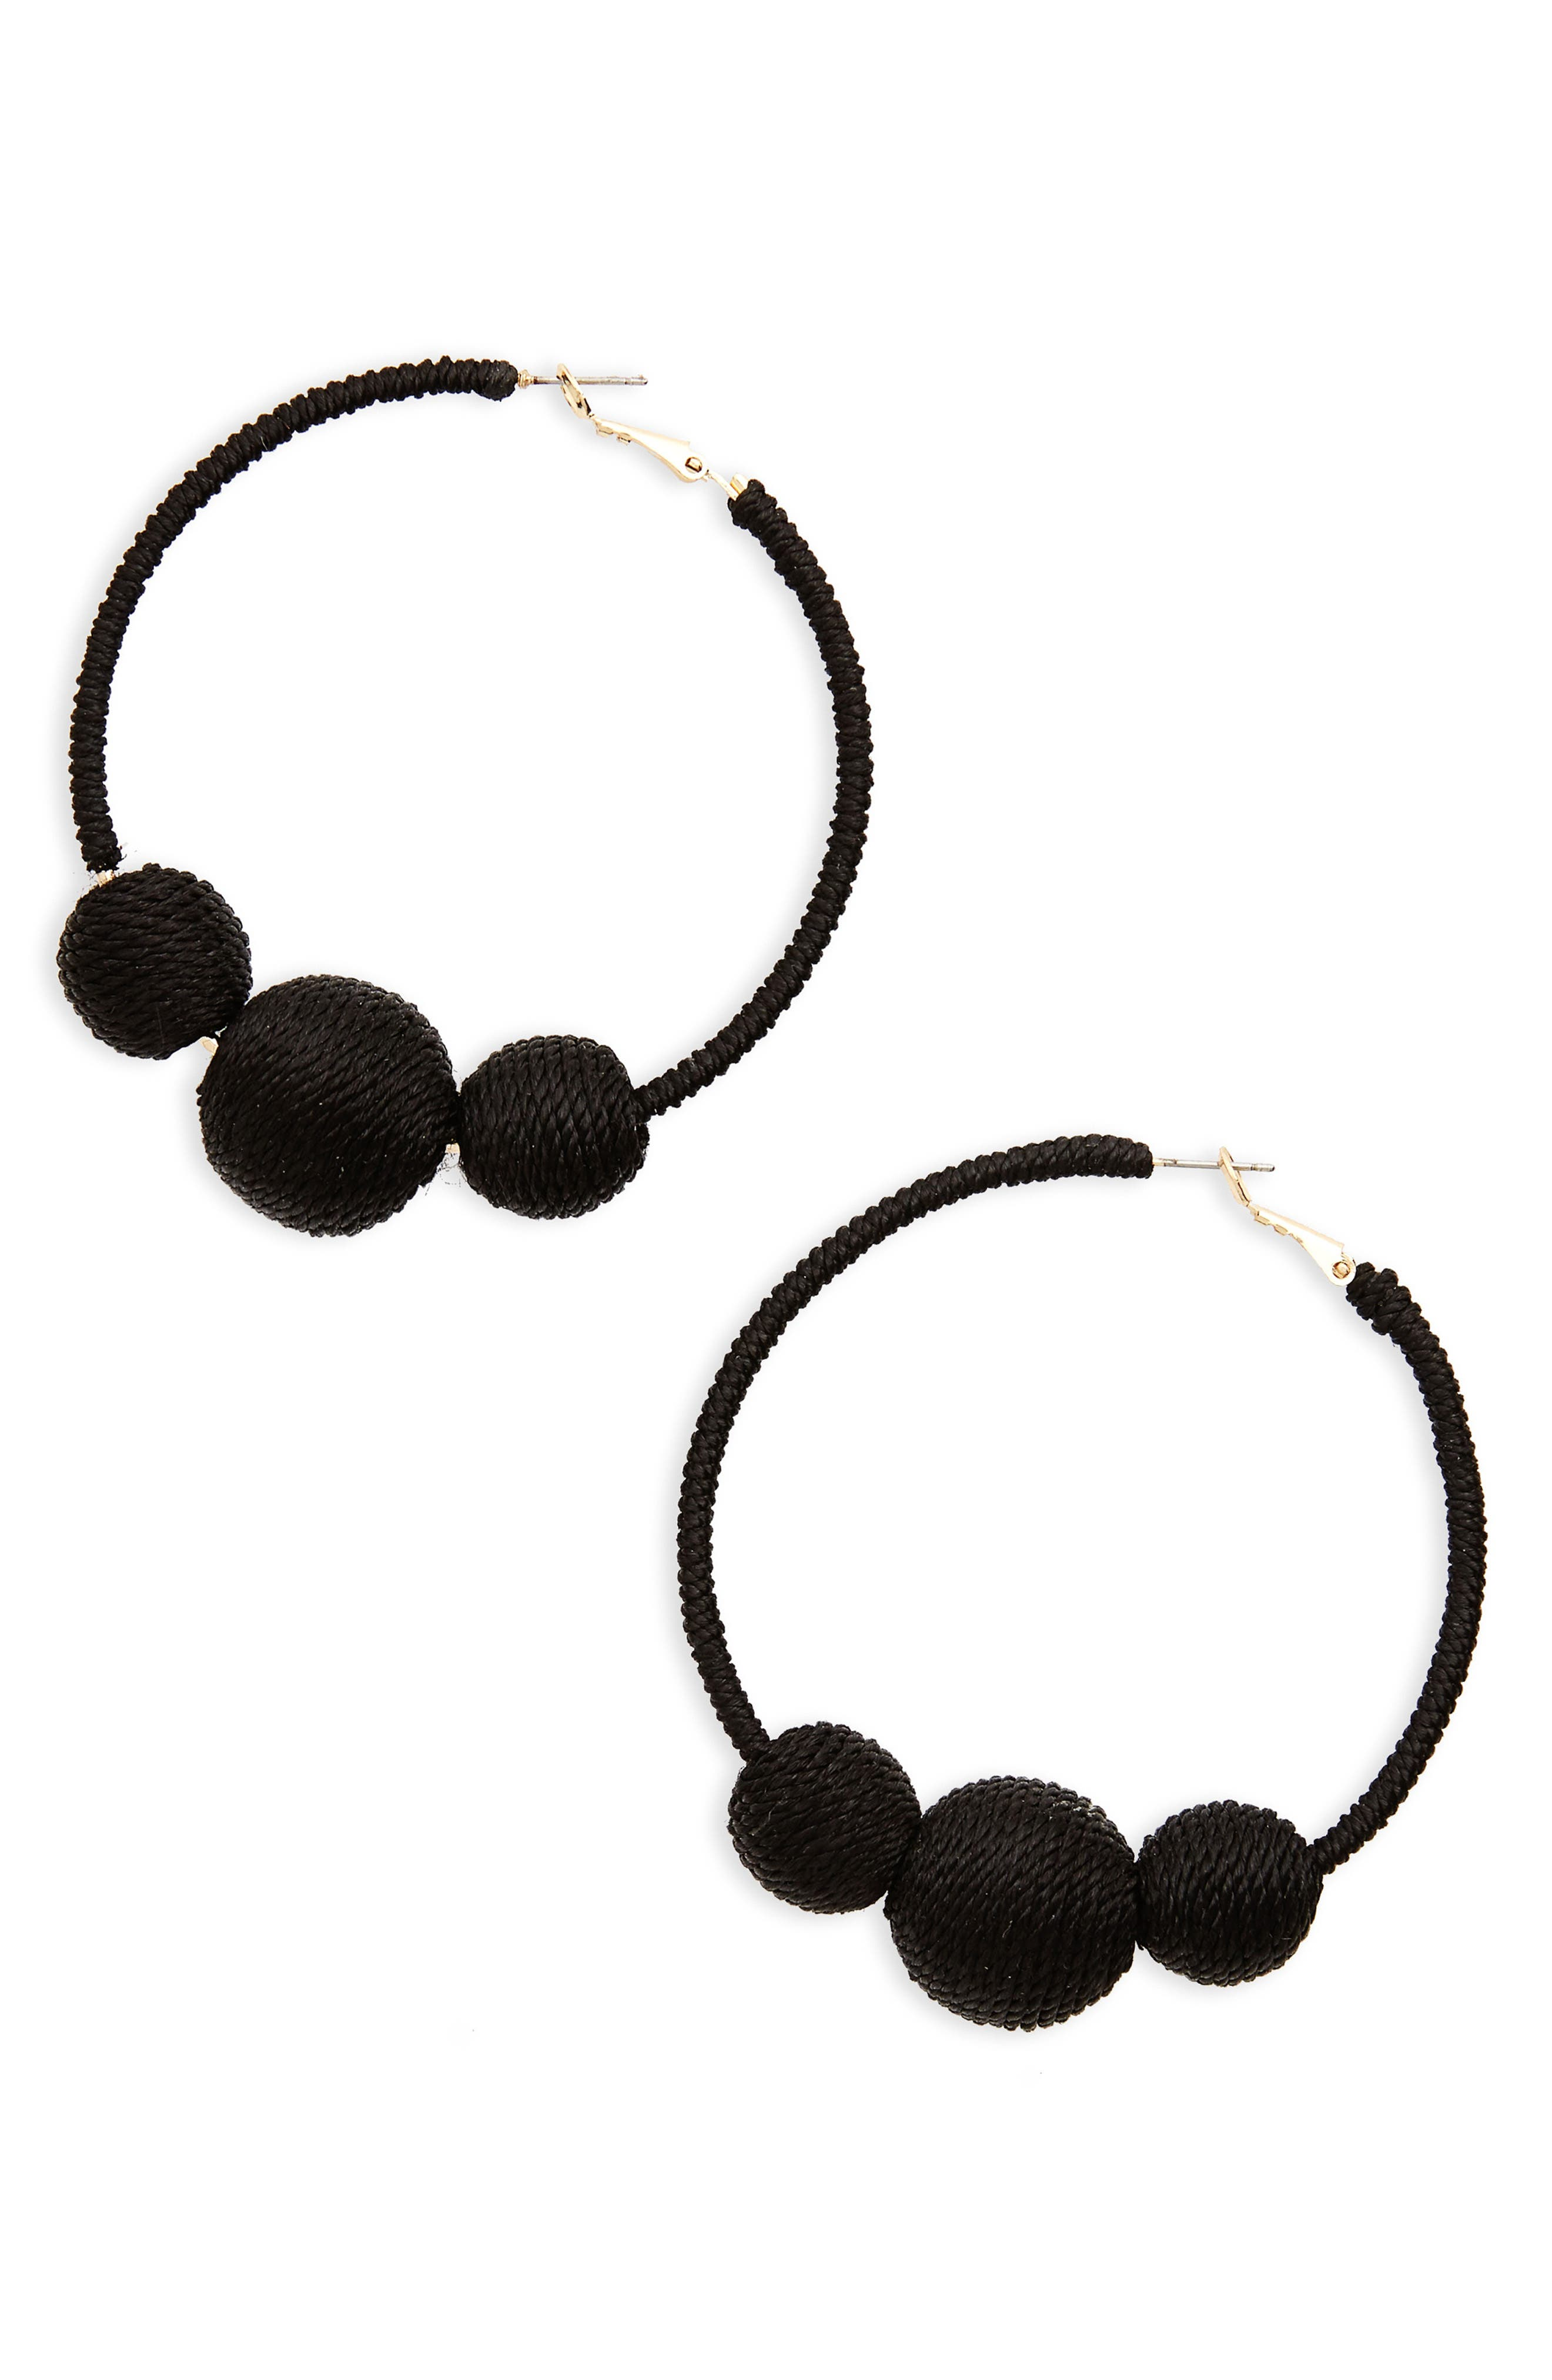 Wrapped Ball Hoop Earrings,                         Main,                         color, Black